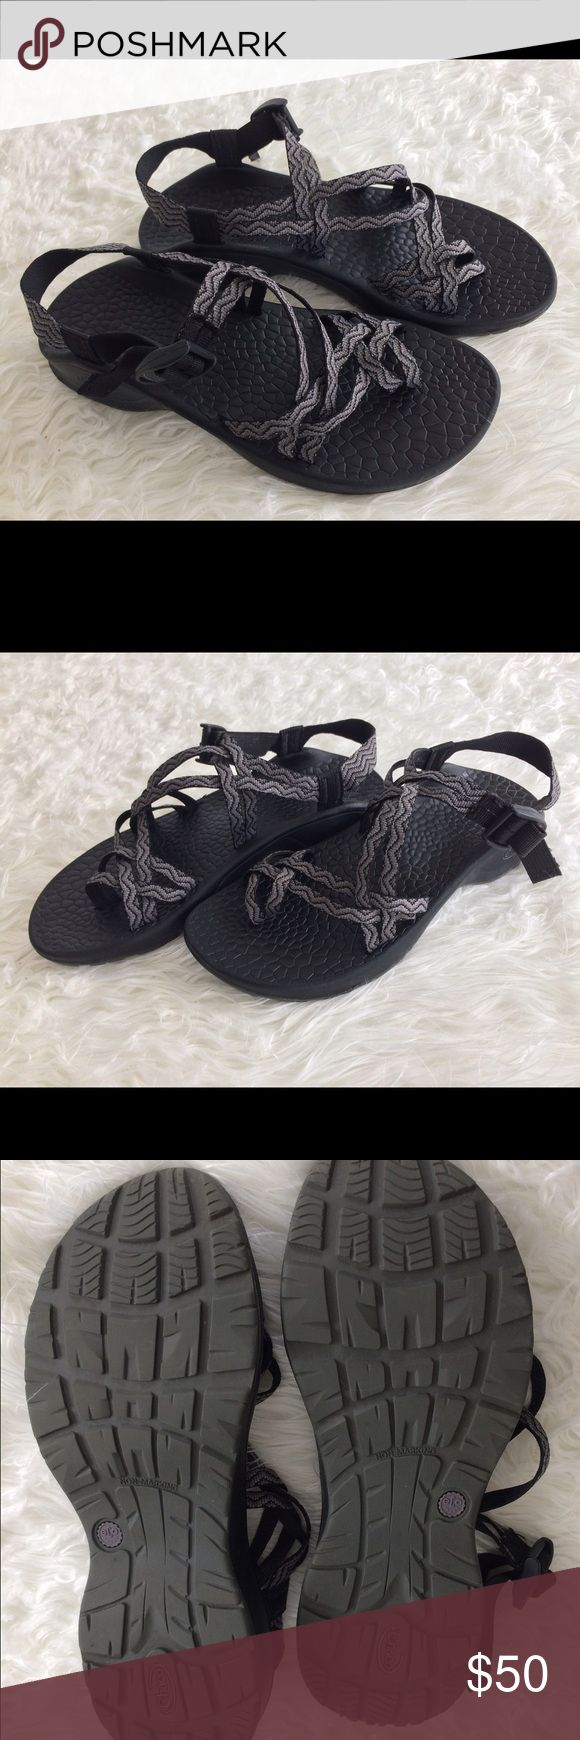 Women's Chaco Sandals (size 10) Women's Chaco sandals. Size 10. Excellent condition. Only wore a handful of times. Very clean. Chacos Shoes Sandals